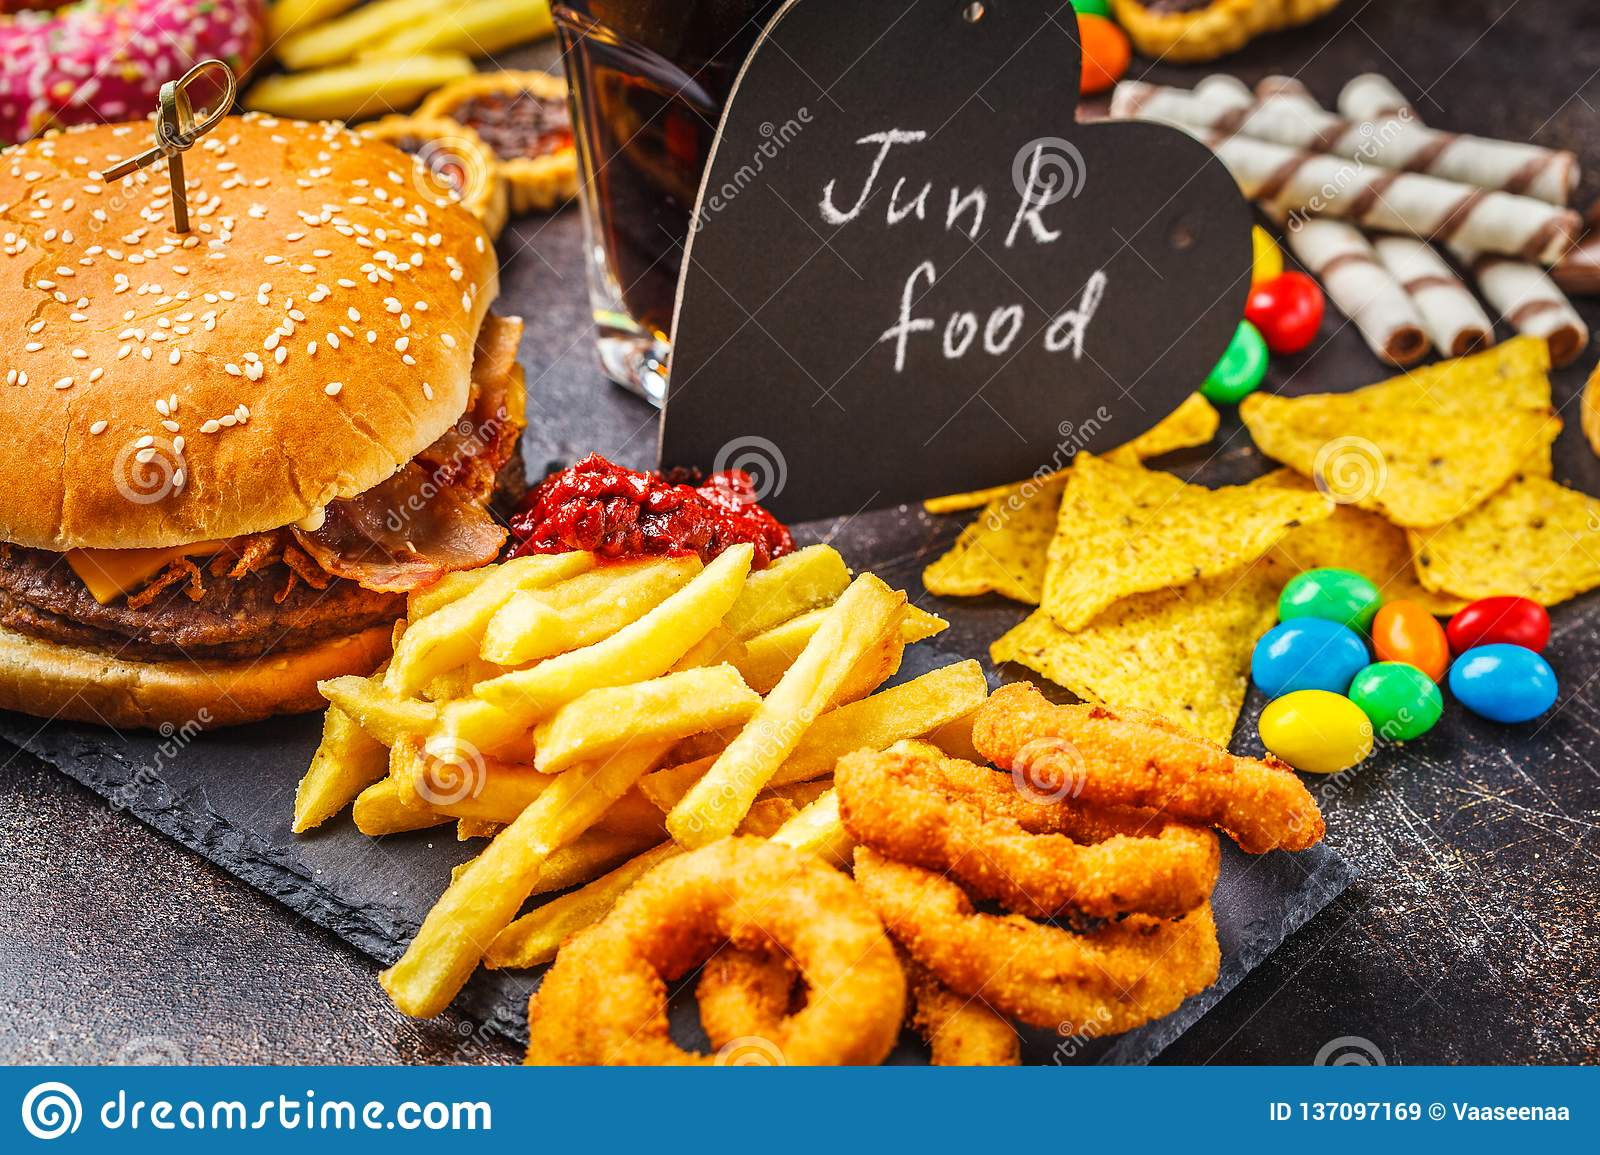 Junk Food Concept  Unhealthy Food Background  Fast Food And Sugar